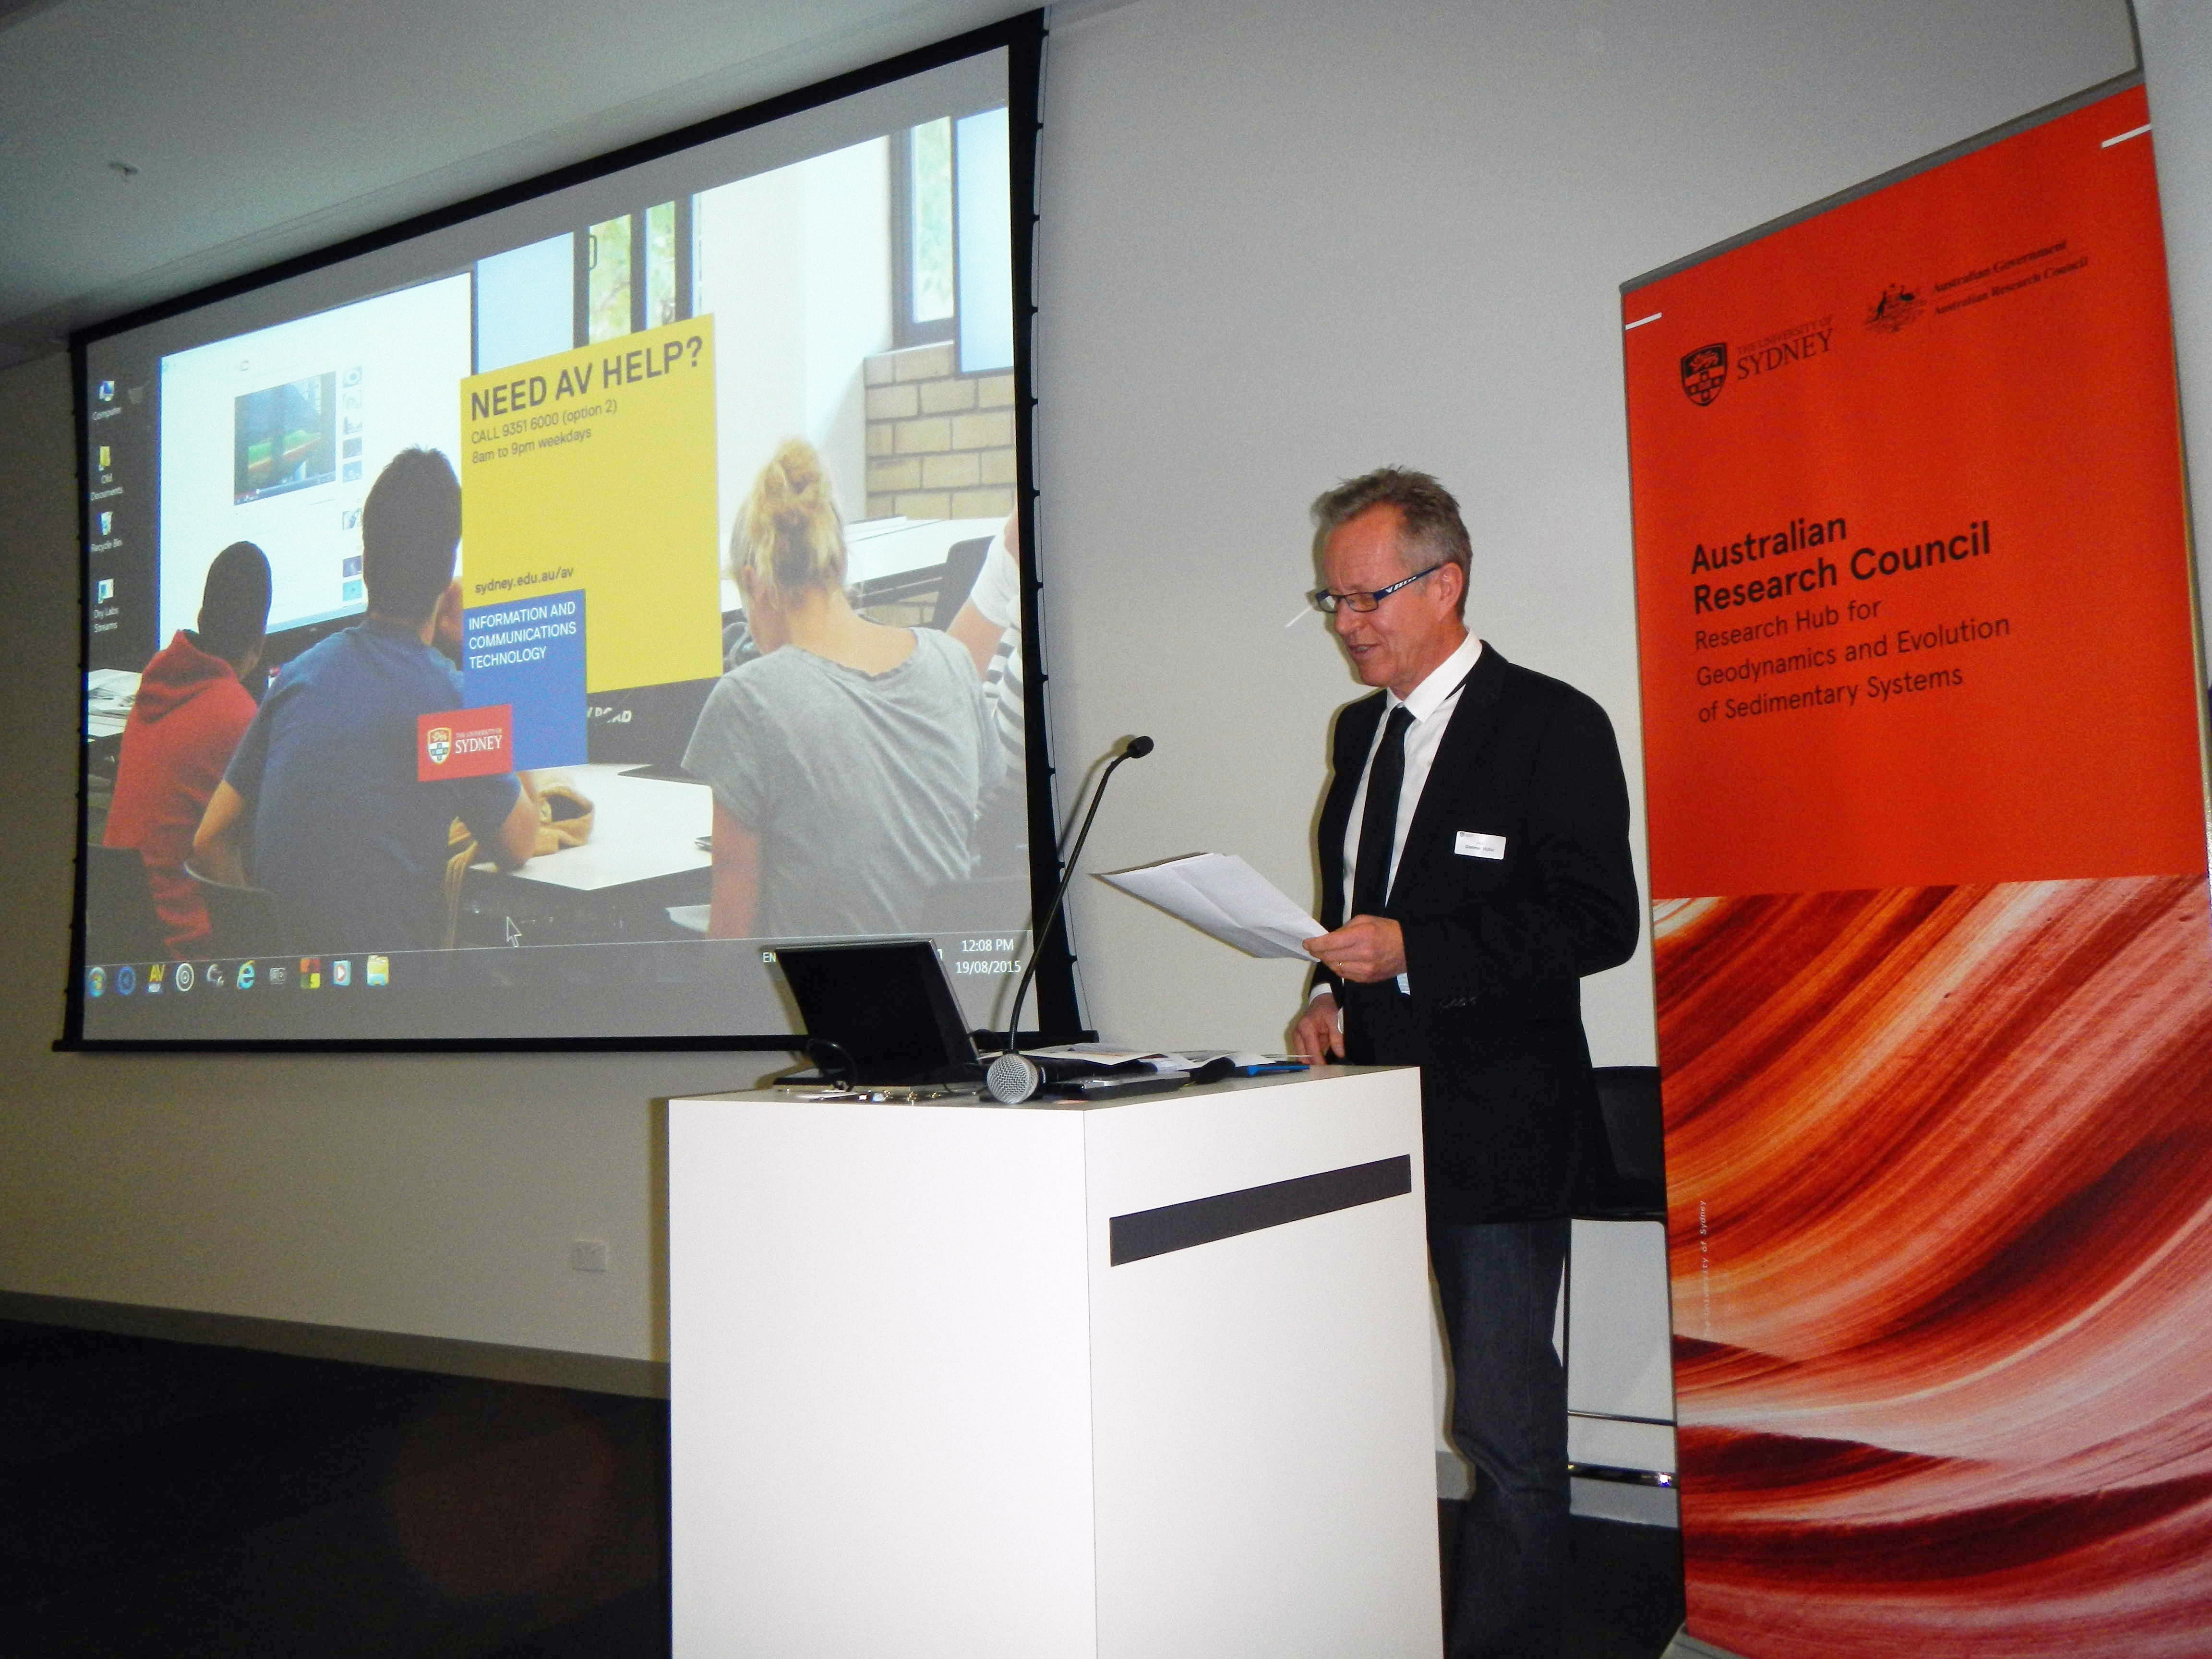 Dietmar Müller's BGH opening speech 19 August 2015